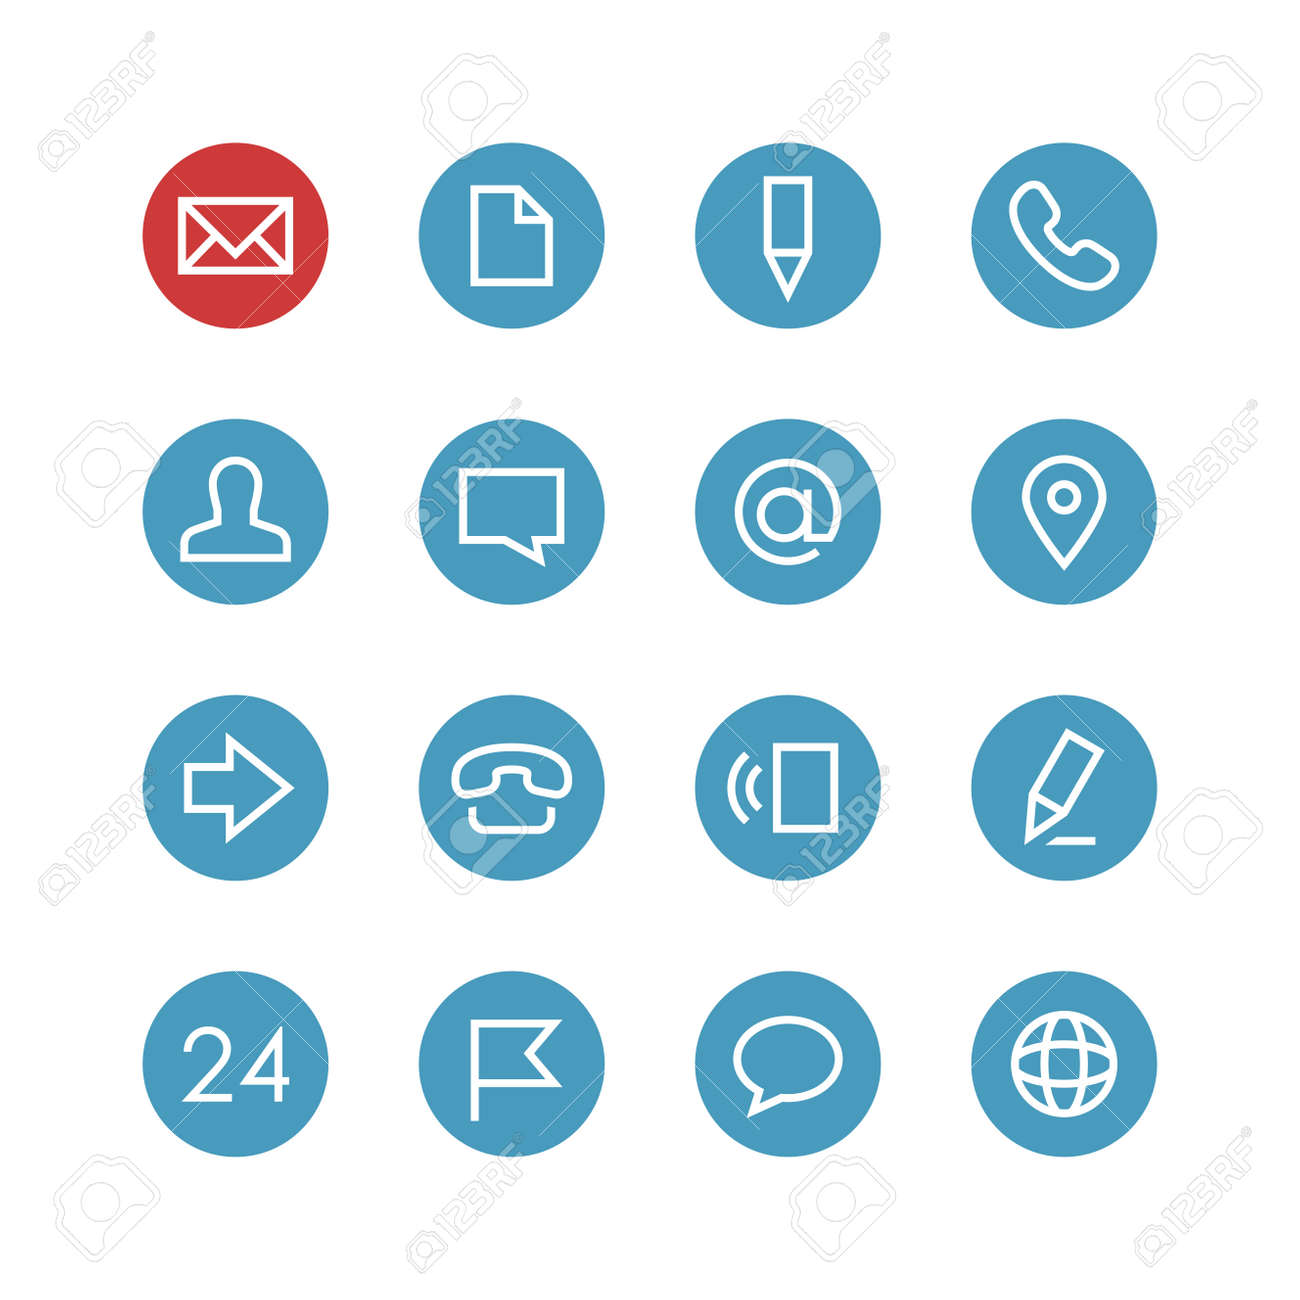 Contacts vector icon set - different symbols on the round blue background. - 53356762